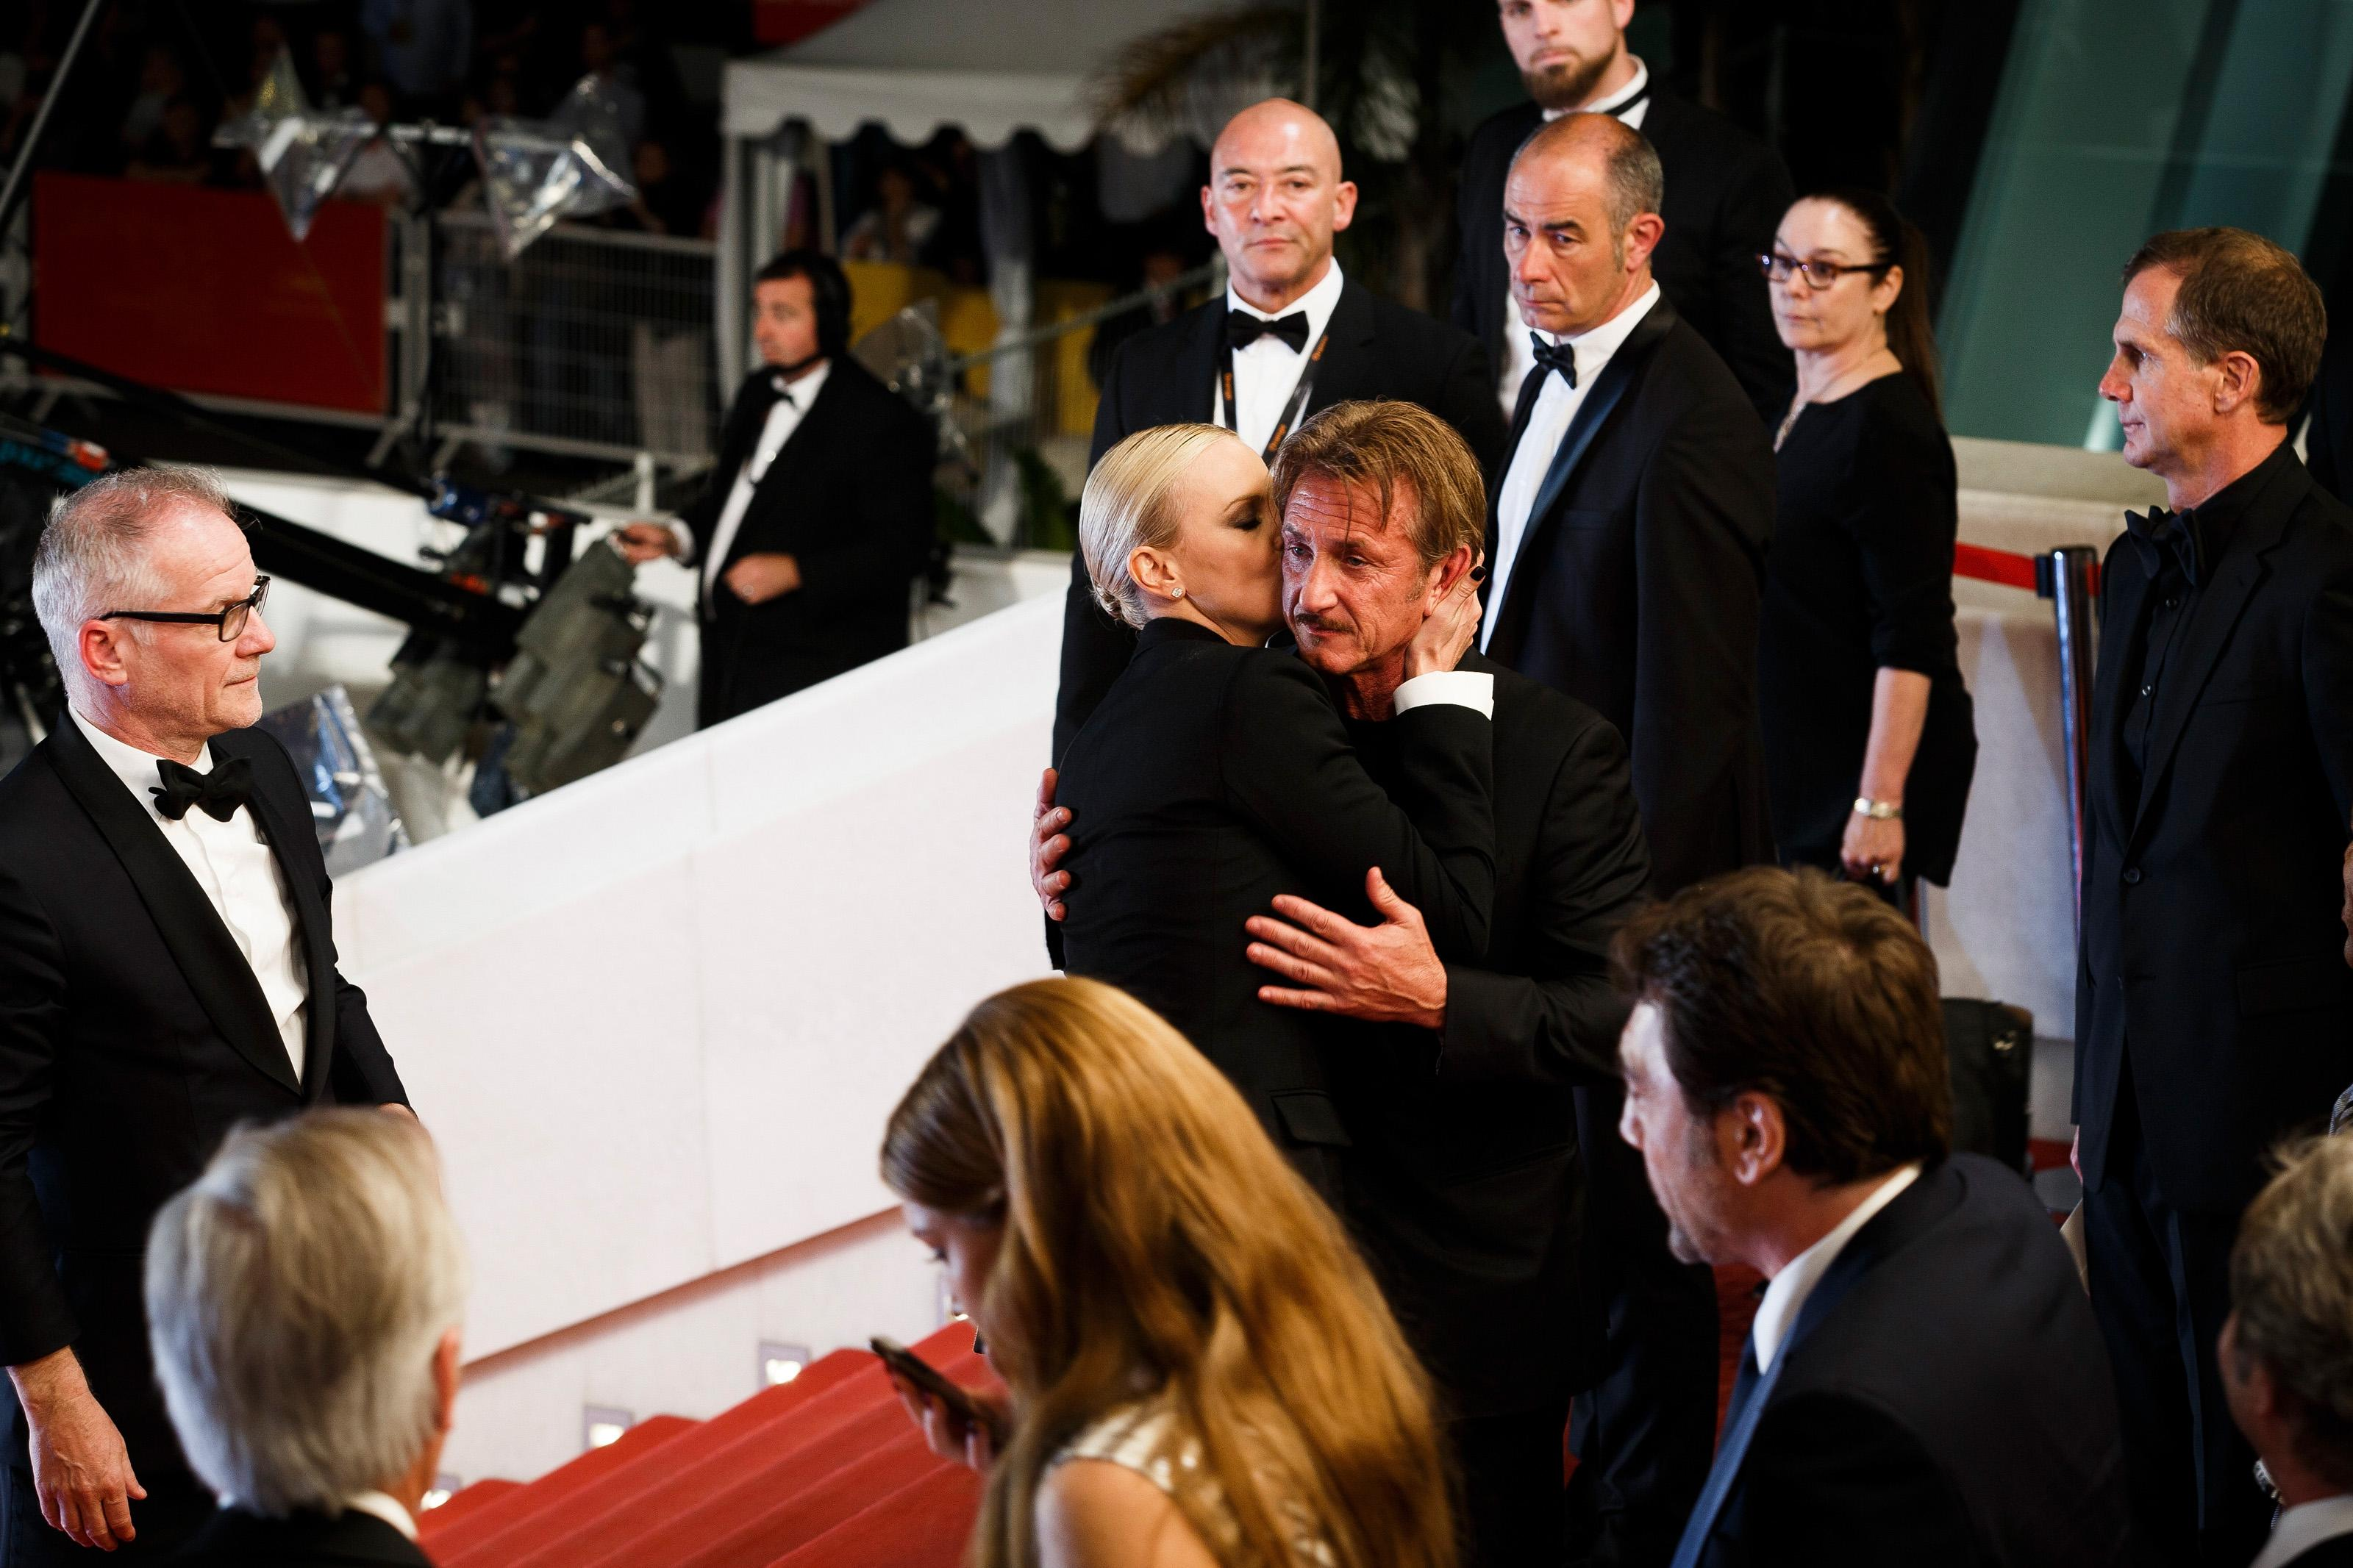 "CANNES, FRANCE - MAY 20: Sean Penn and Charlize Theron embrace each other as they leave the screening of ""The Last Face"" at the annual 69th Cannes Film Festival at Palais des Festivals on May 20, 2016 in Cannes, France. (Photo by Tristan Fewings/Getty Images)"